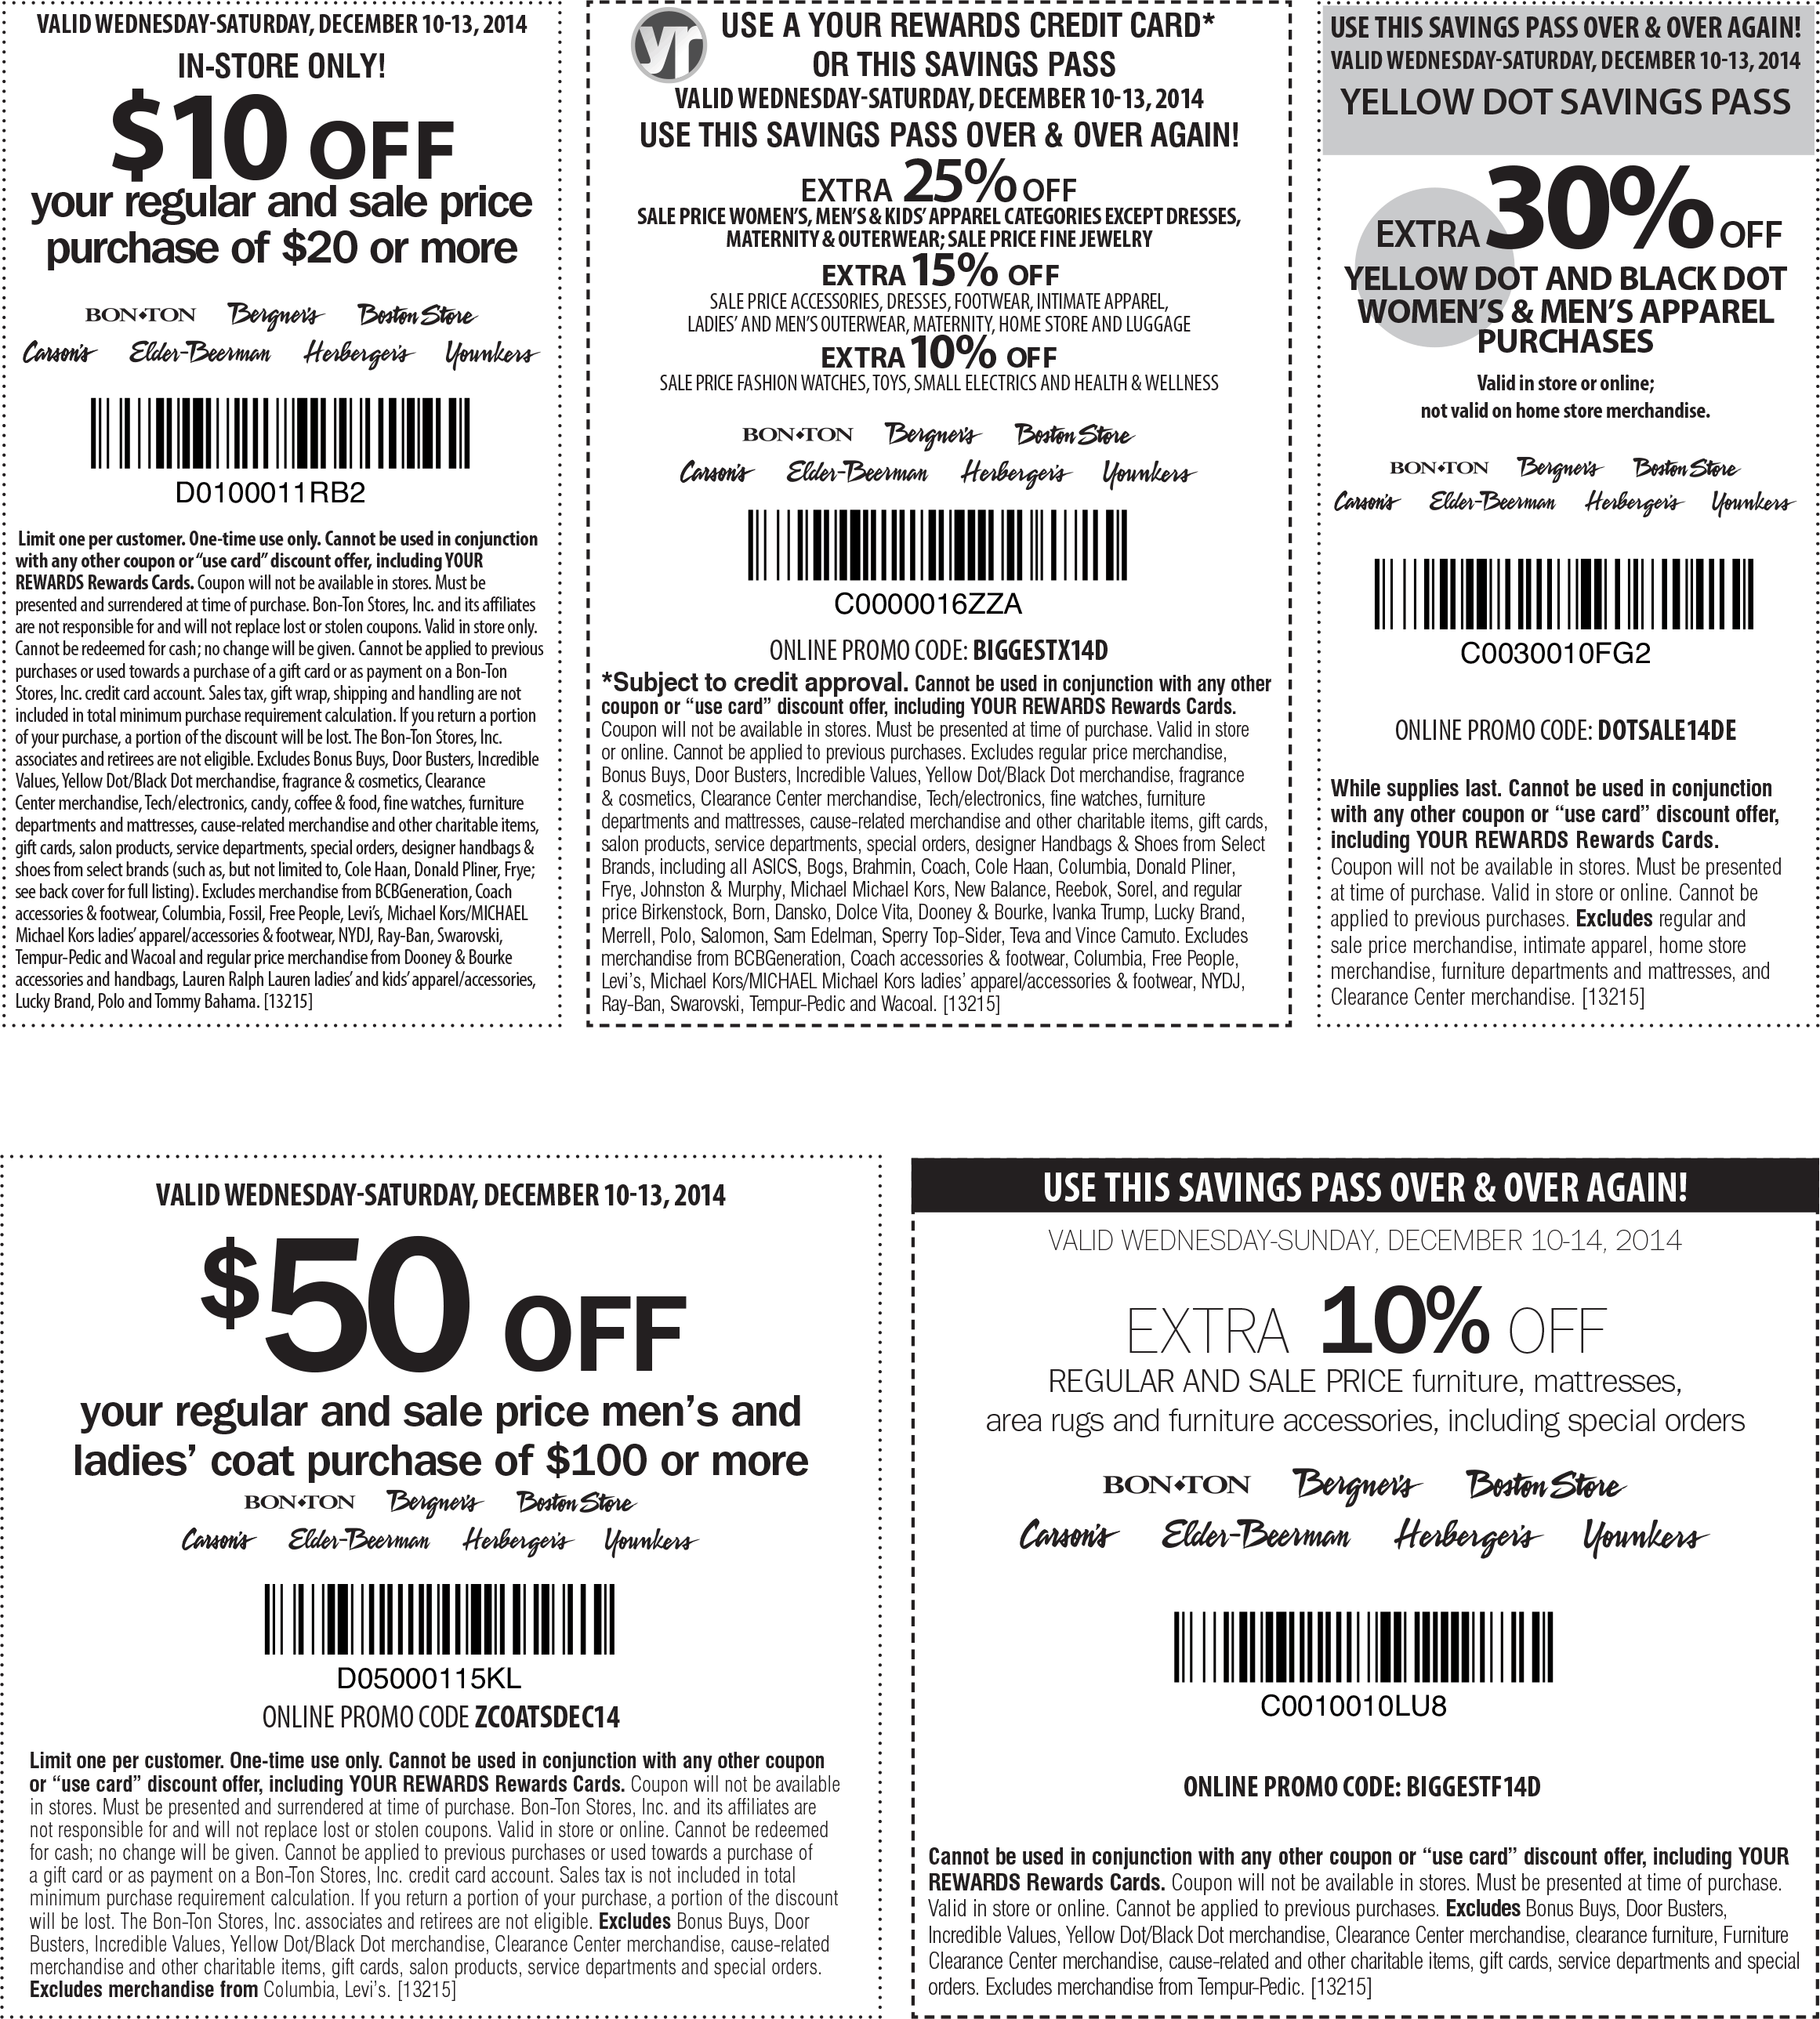 Bon Ton Coupon April 2018 $10 off $20 & more at Carsons, Bon Ton & sister stores, or 25% off online via promo BIGGESTX14D